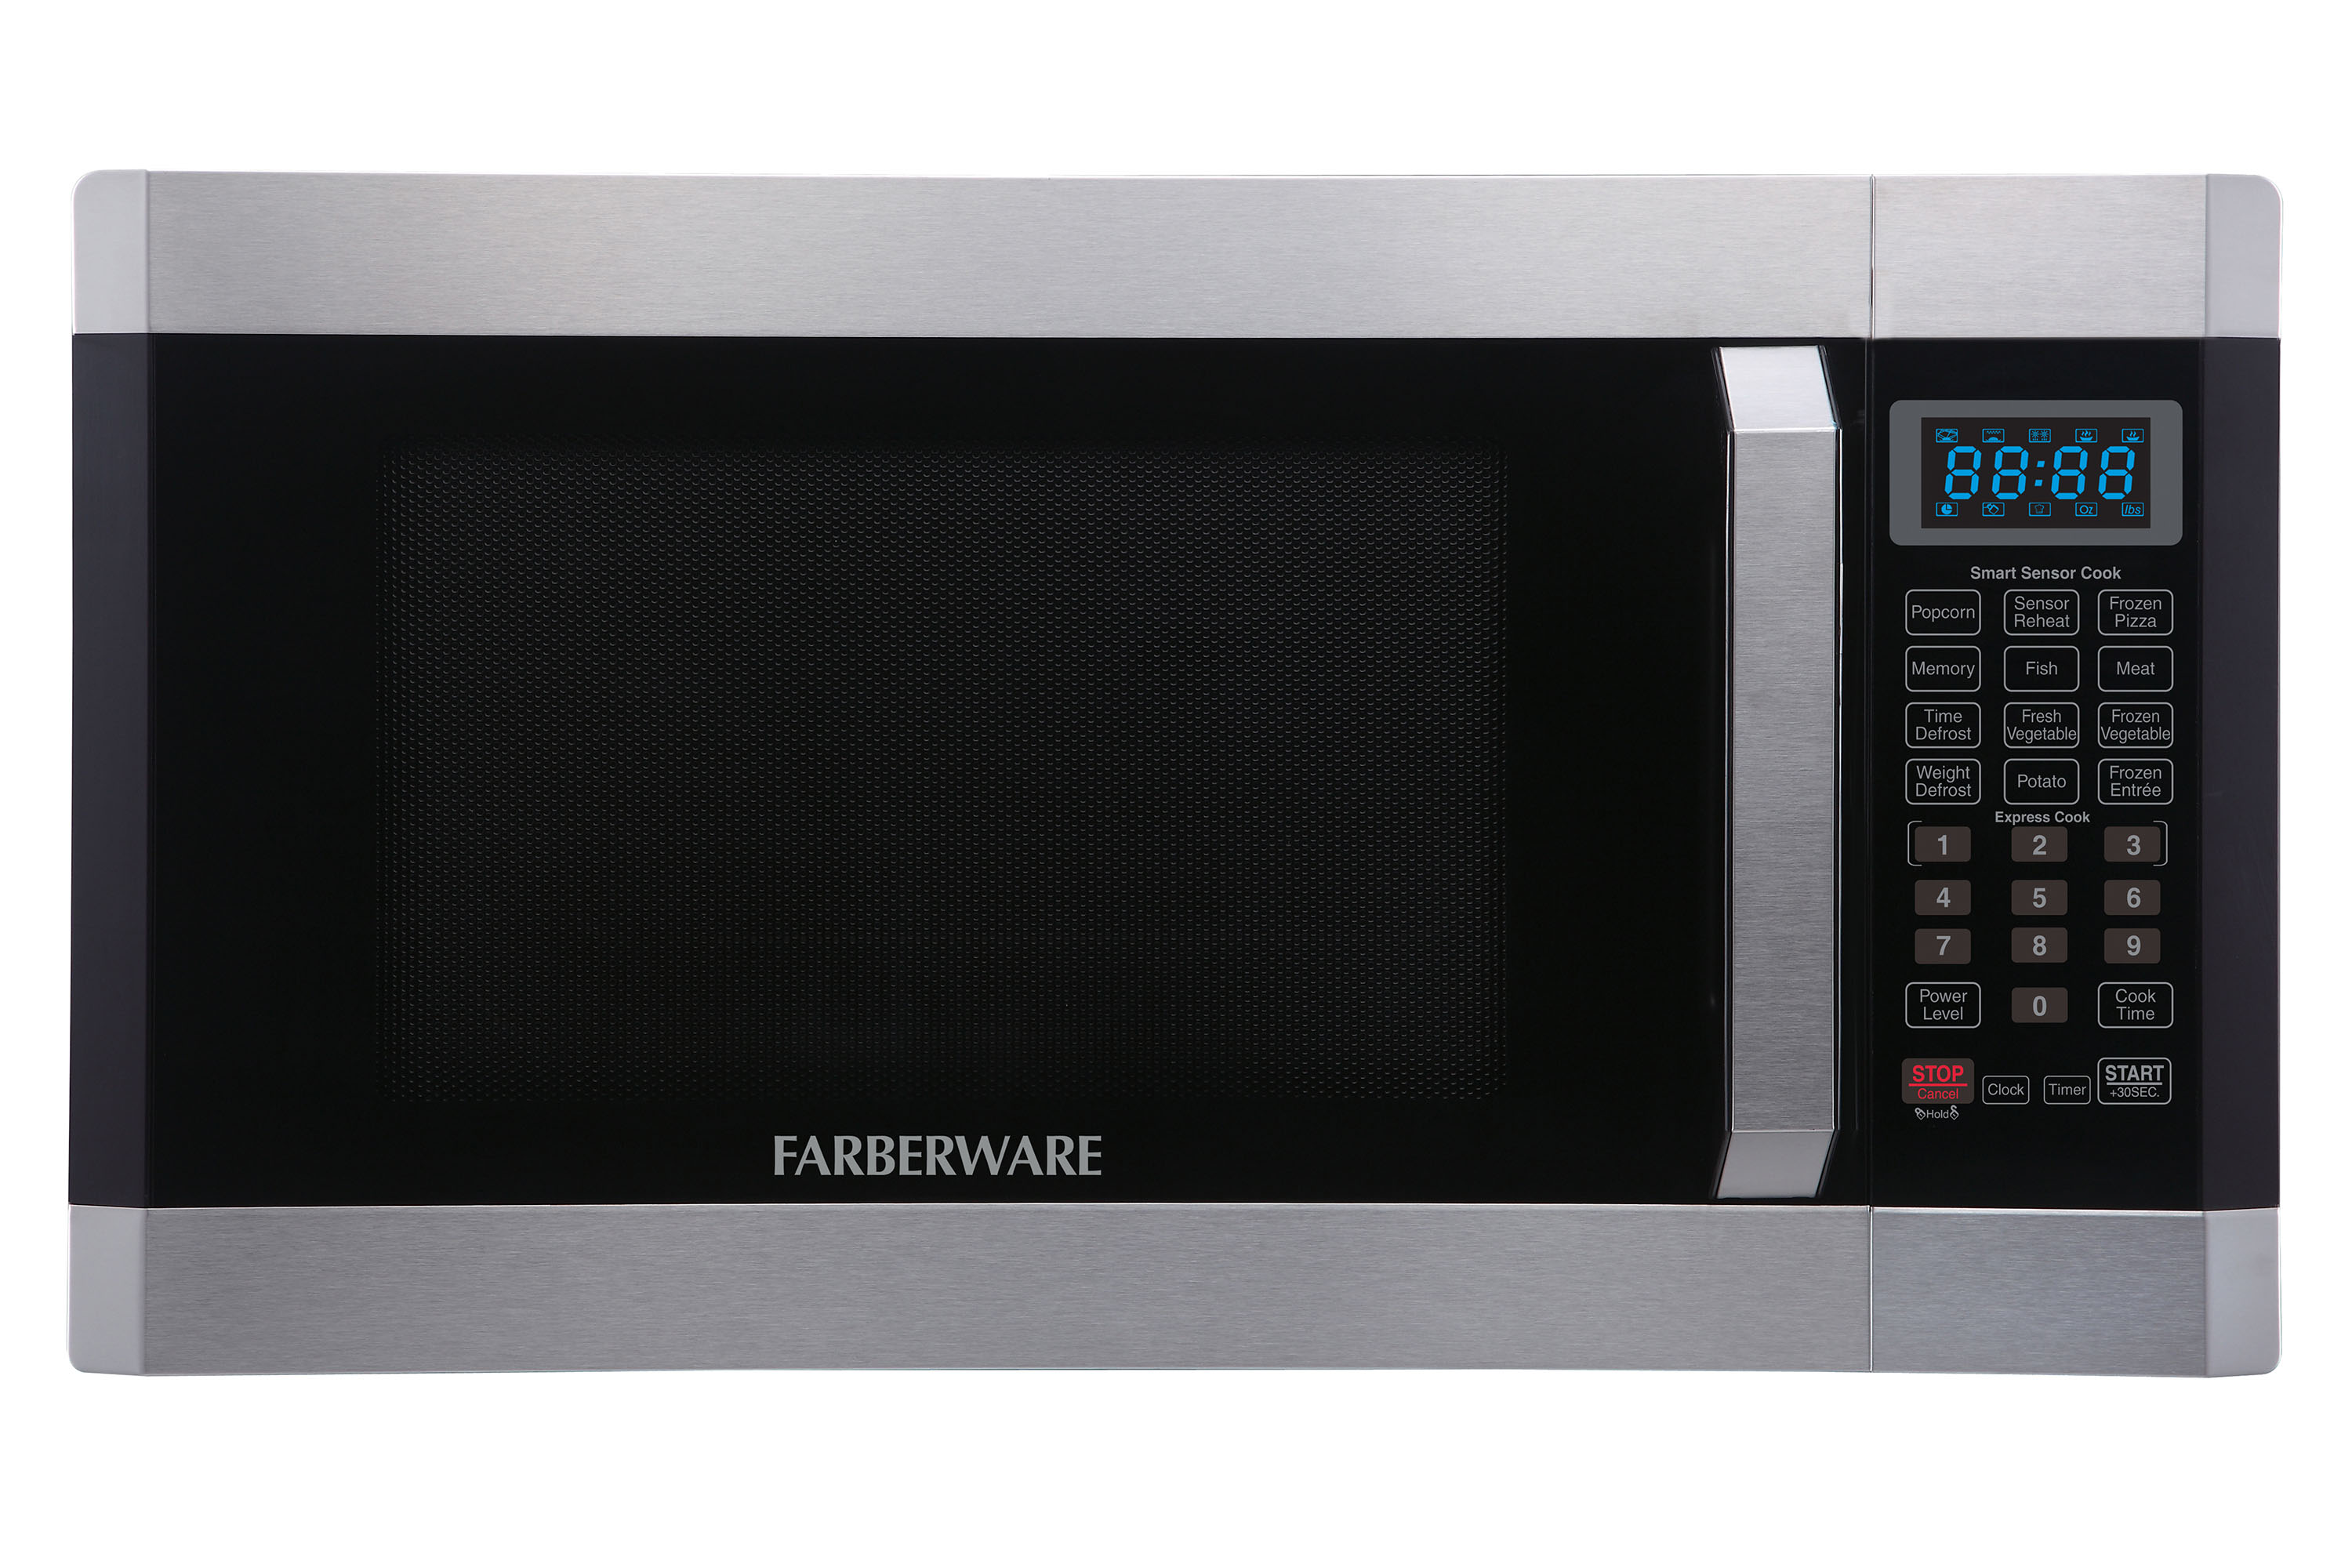 Farberware Professional FMO16AHTPLB 1.6 Cu. Ft 1100- Watt Microwave Oven with Smart Sensor, Stainless Steel with Platinum